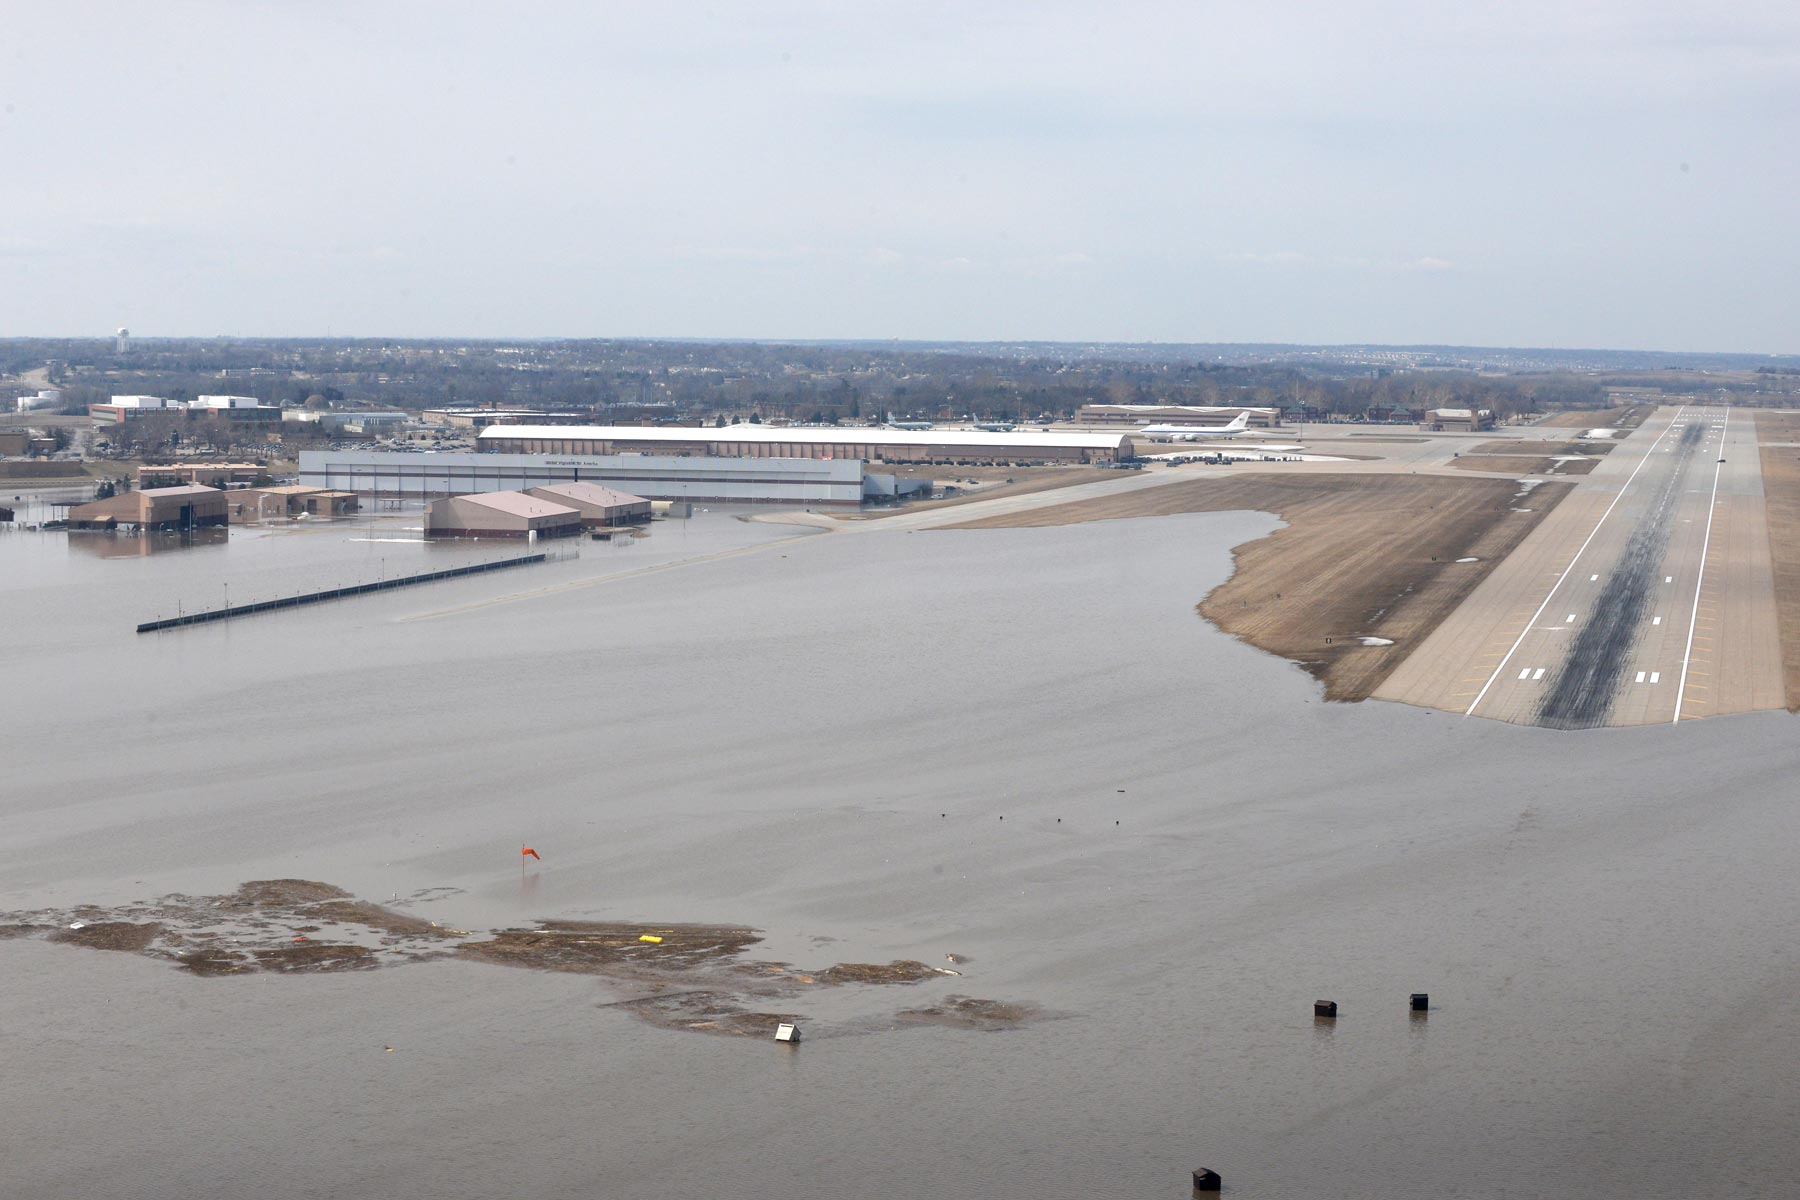 Dozens of Buildings Underwater at Offutt Air Force Base After Massive Flood